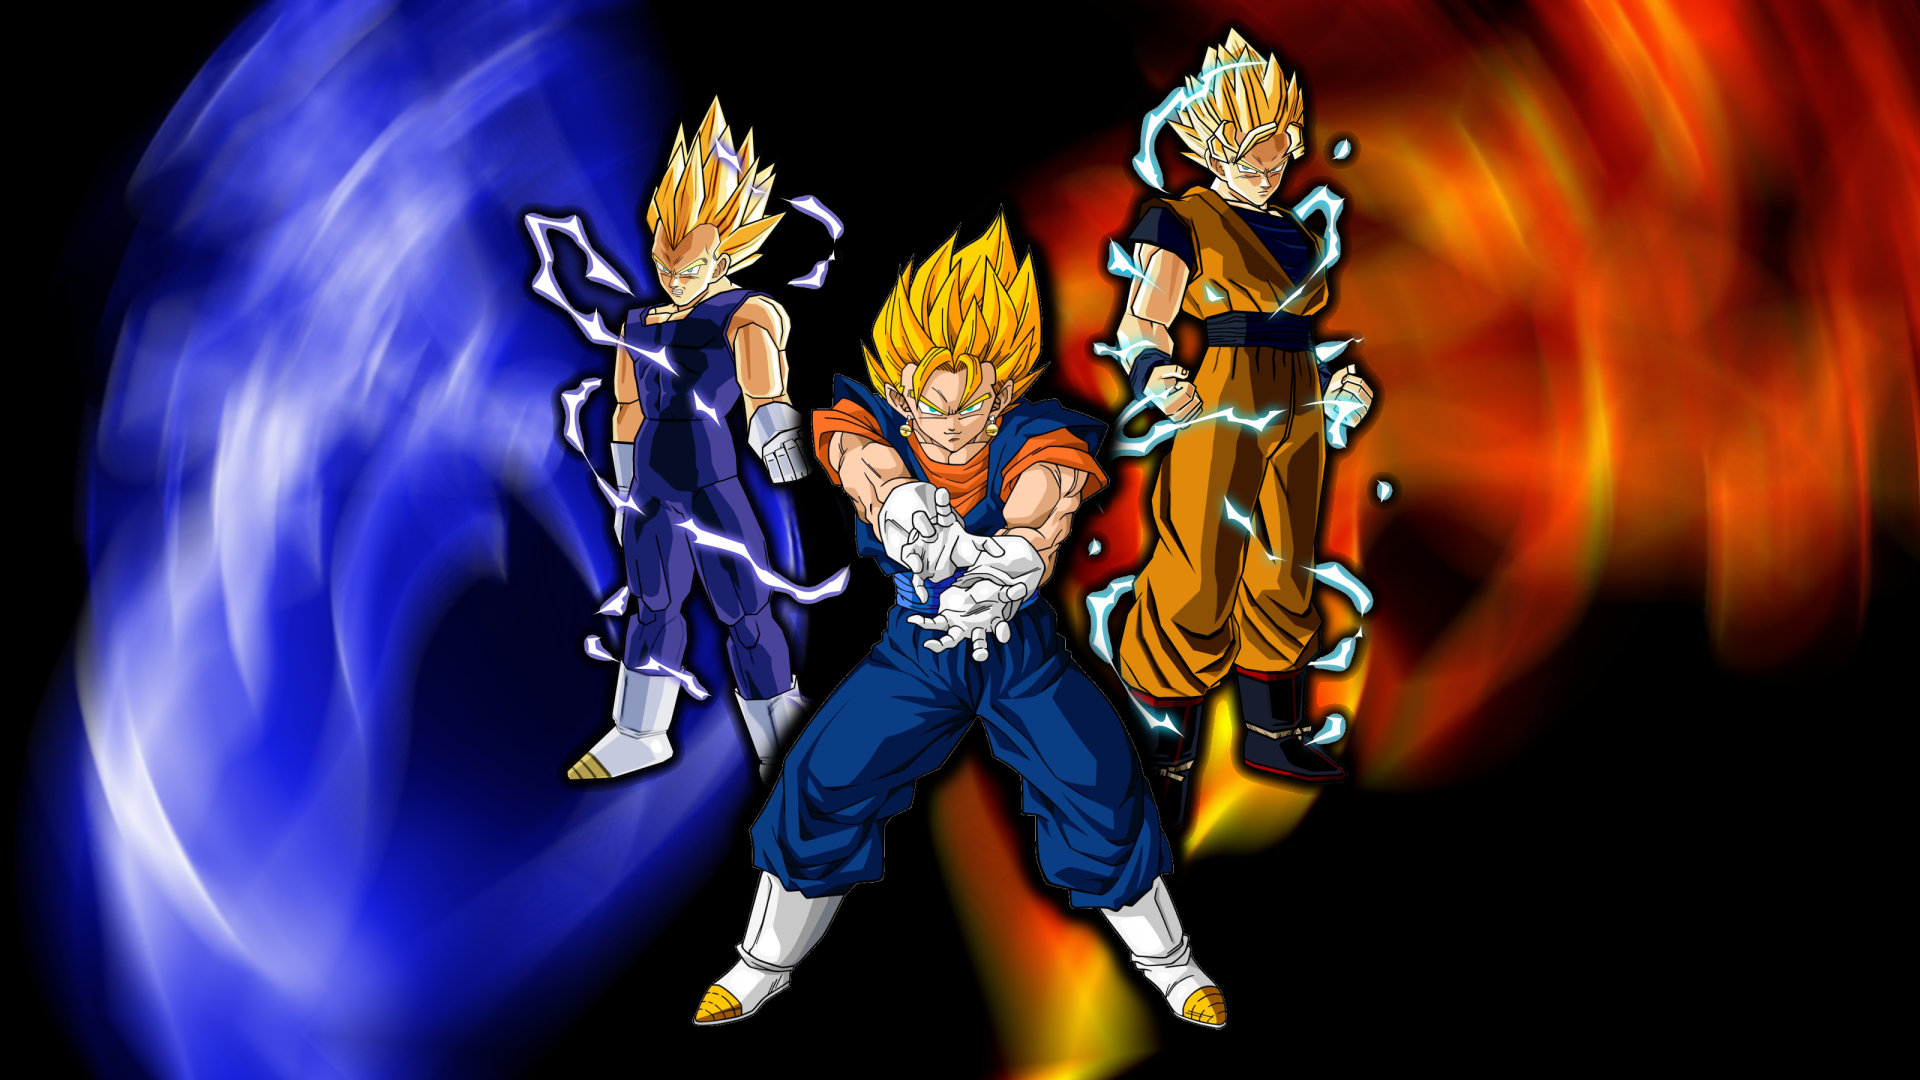 Dragon Ball Z Wallpapers Hd 20